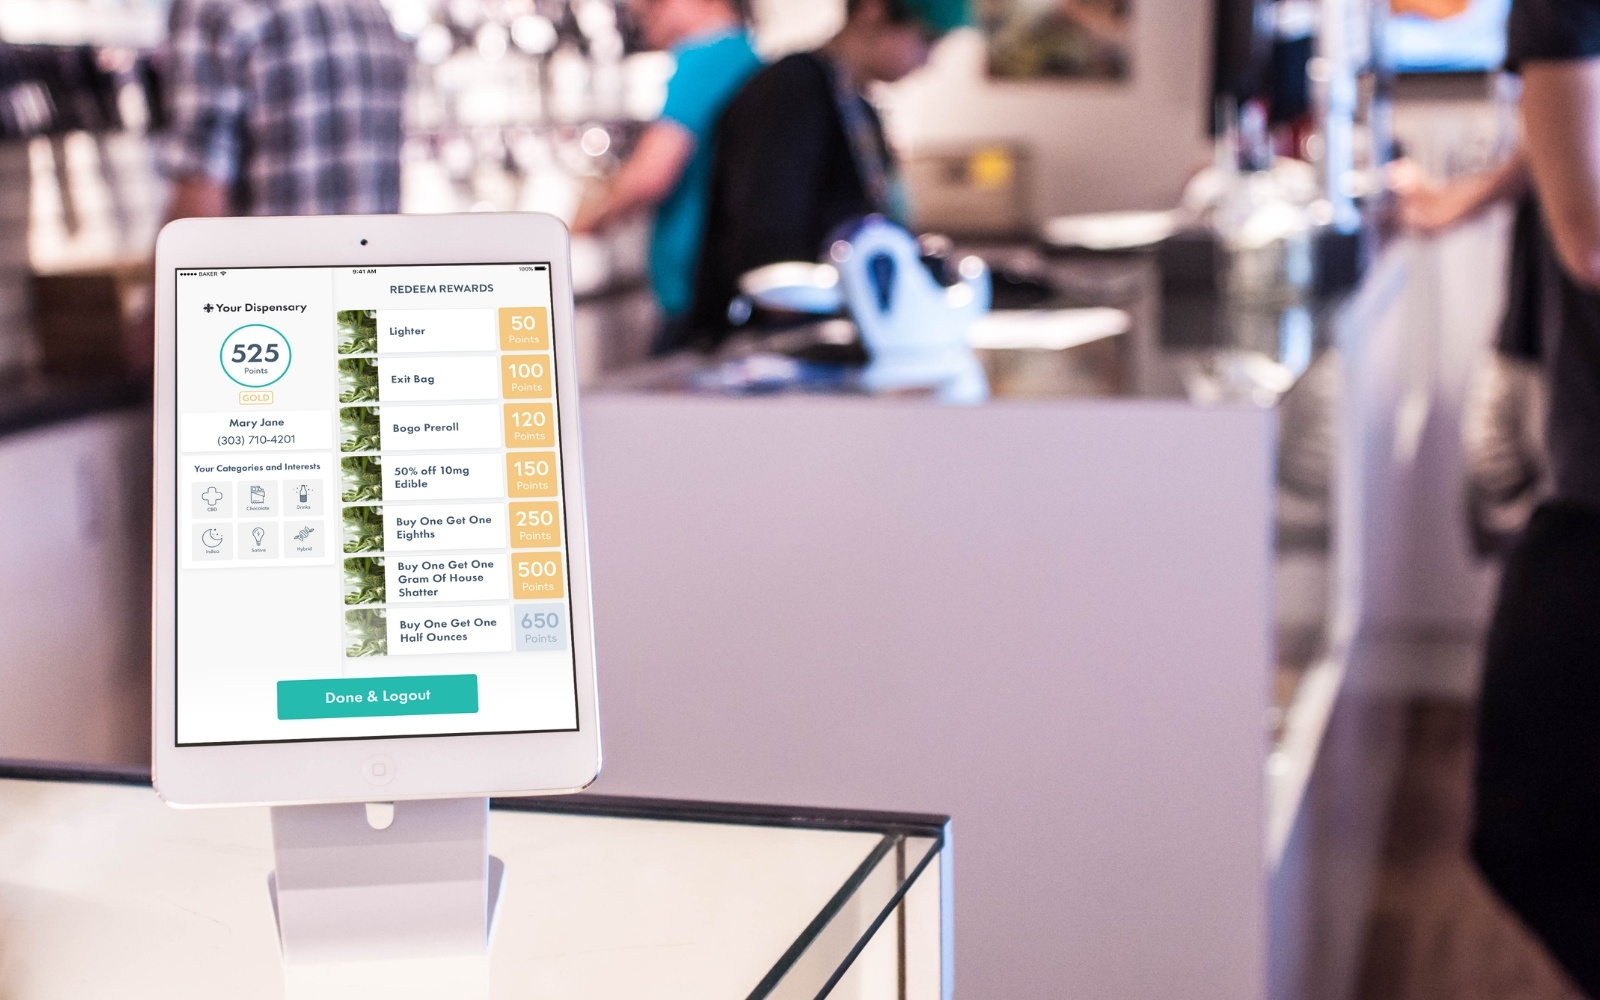 dispensary loyalty checkin and self-serve kiosks from Baker